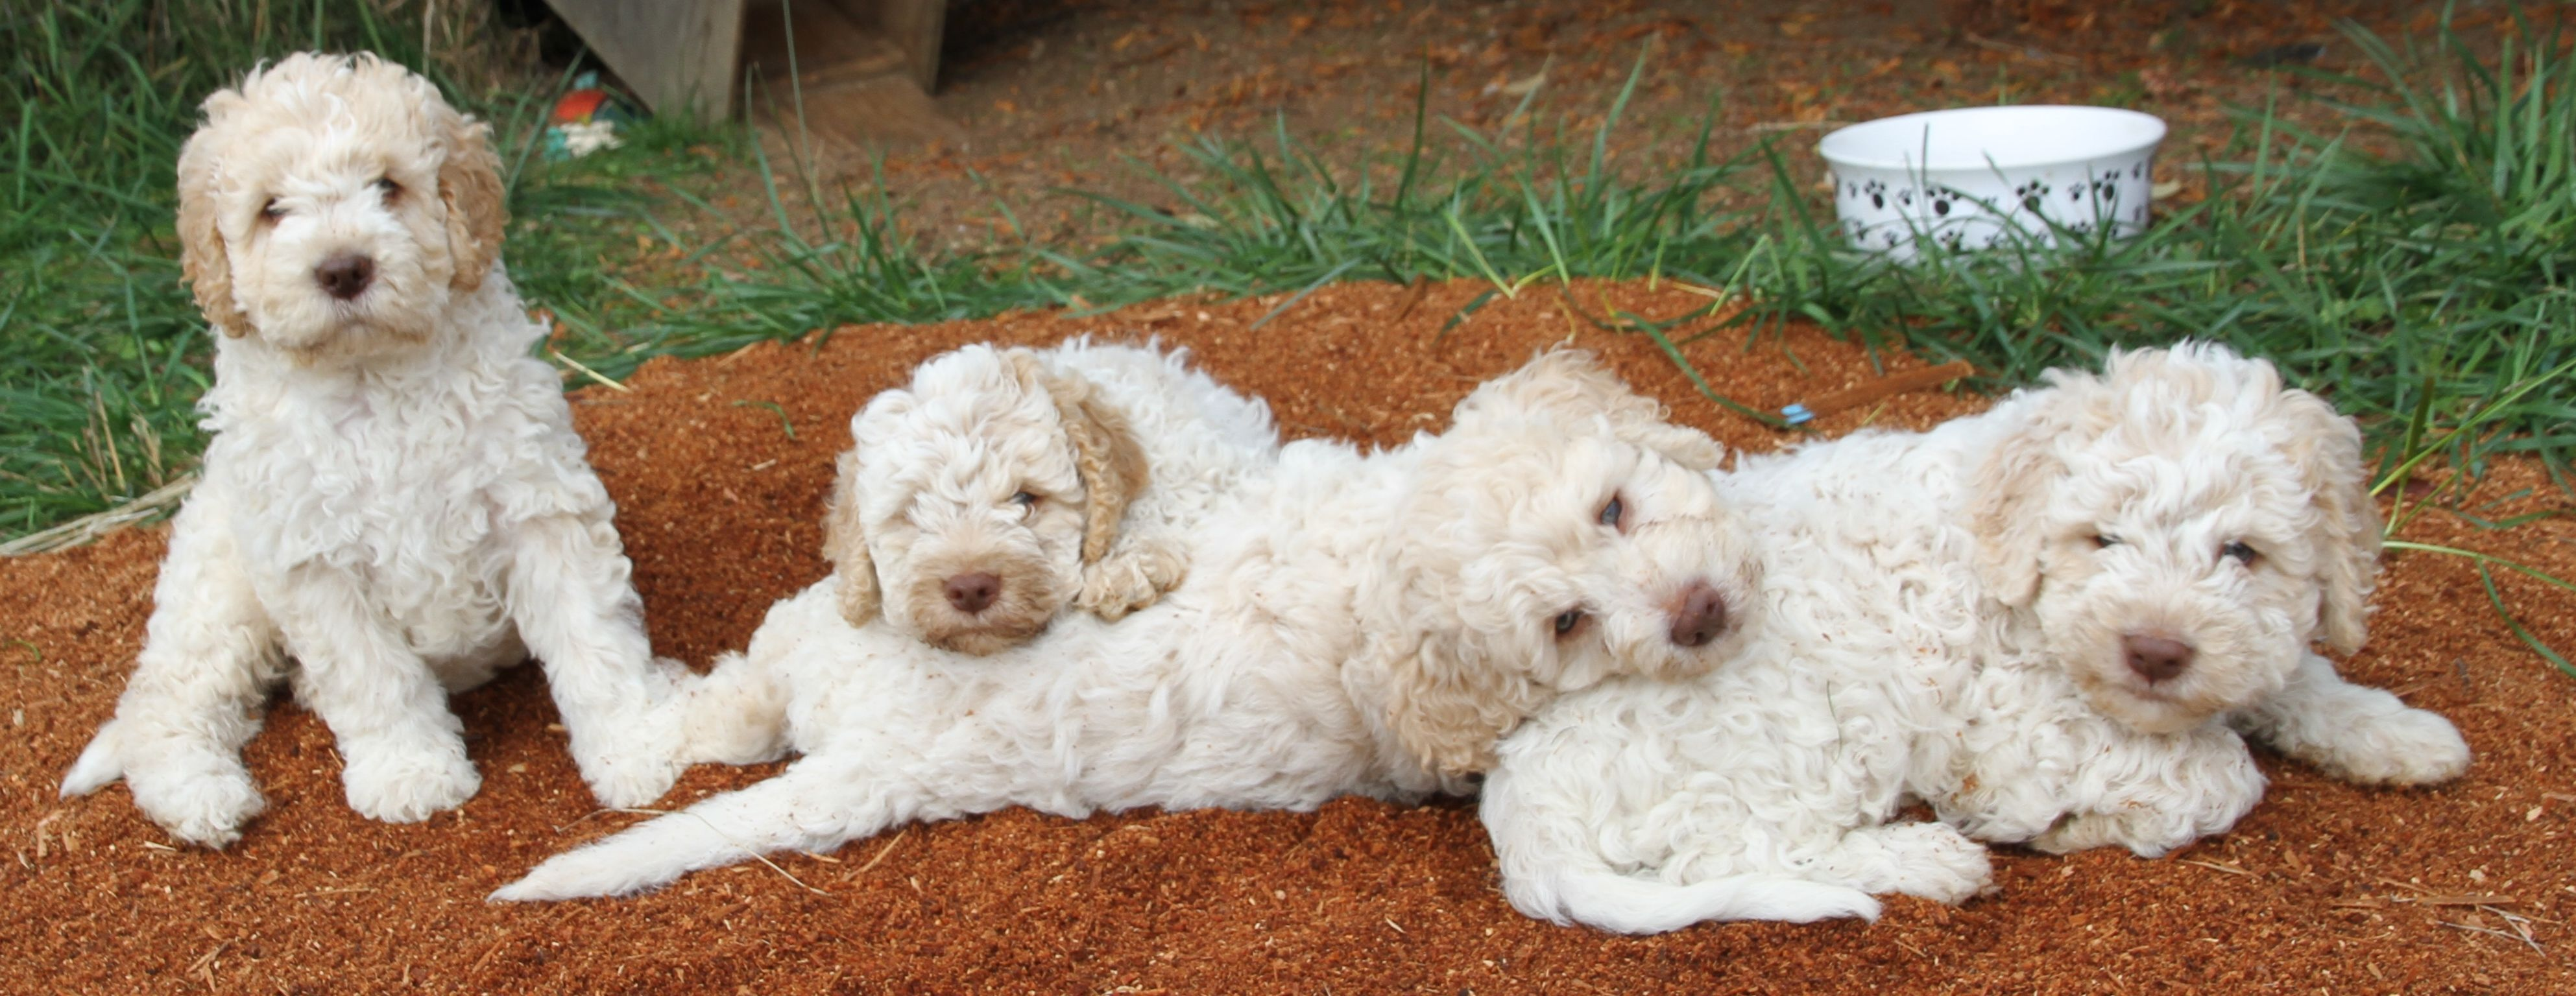 Ducketts White Cream Lagotto Bred Specifically For Good Visibility During The Hunt Or Retrieving At Dusk Or Dawn Premium Disti Dogs Lagotto Romagnolo Puppies